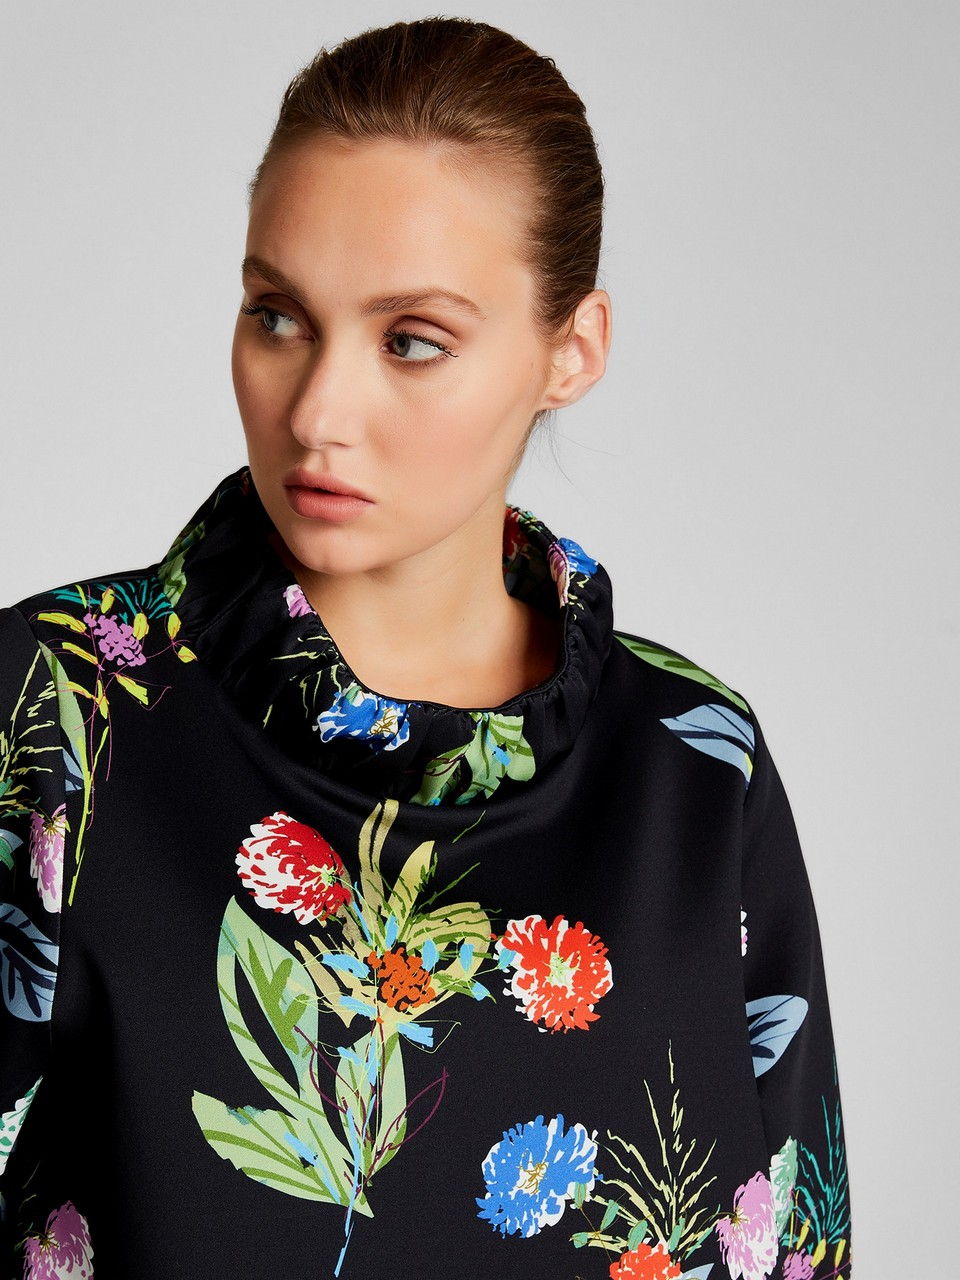 Floral Patterned Three Quarter Sleeve Blouse